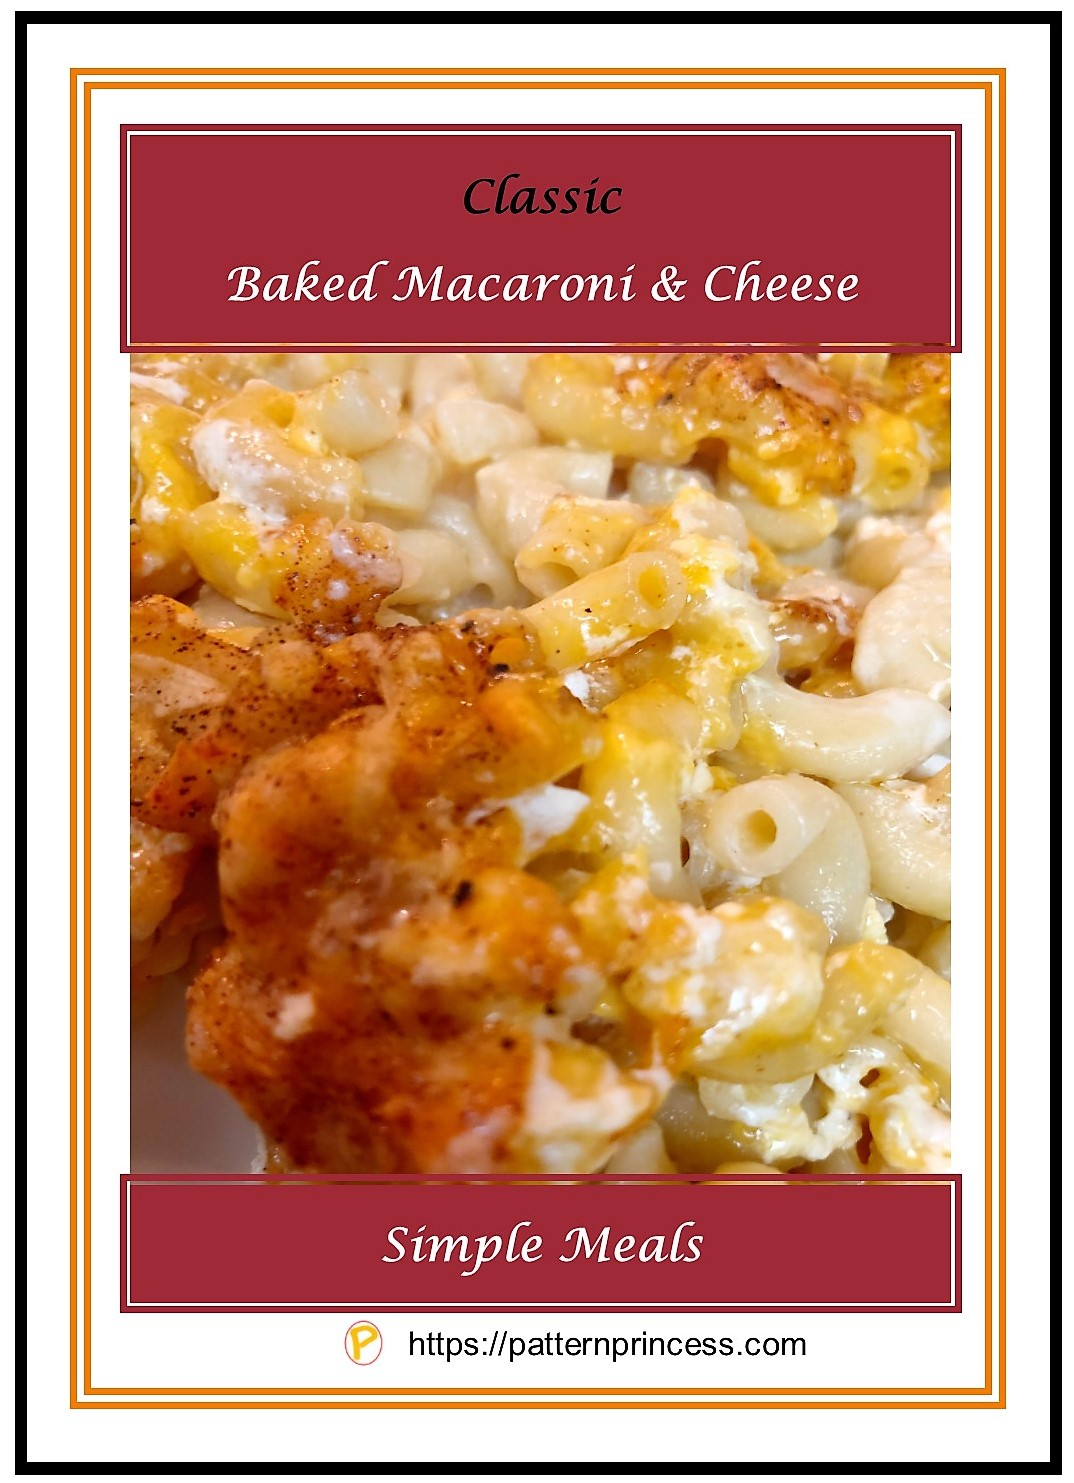 Classic Baked Macaroni and Cheese 1